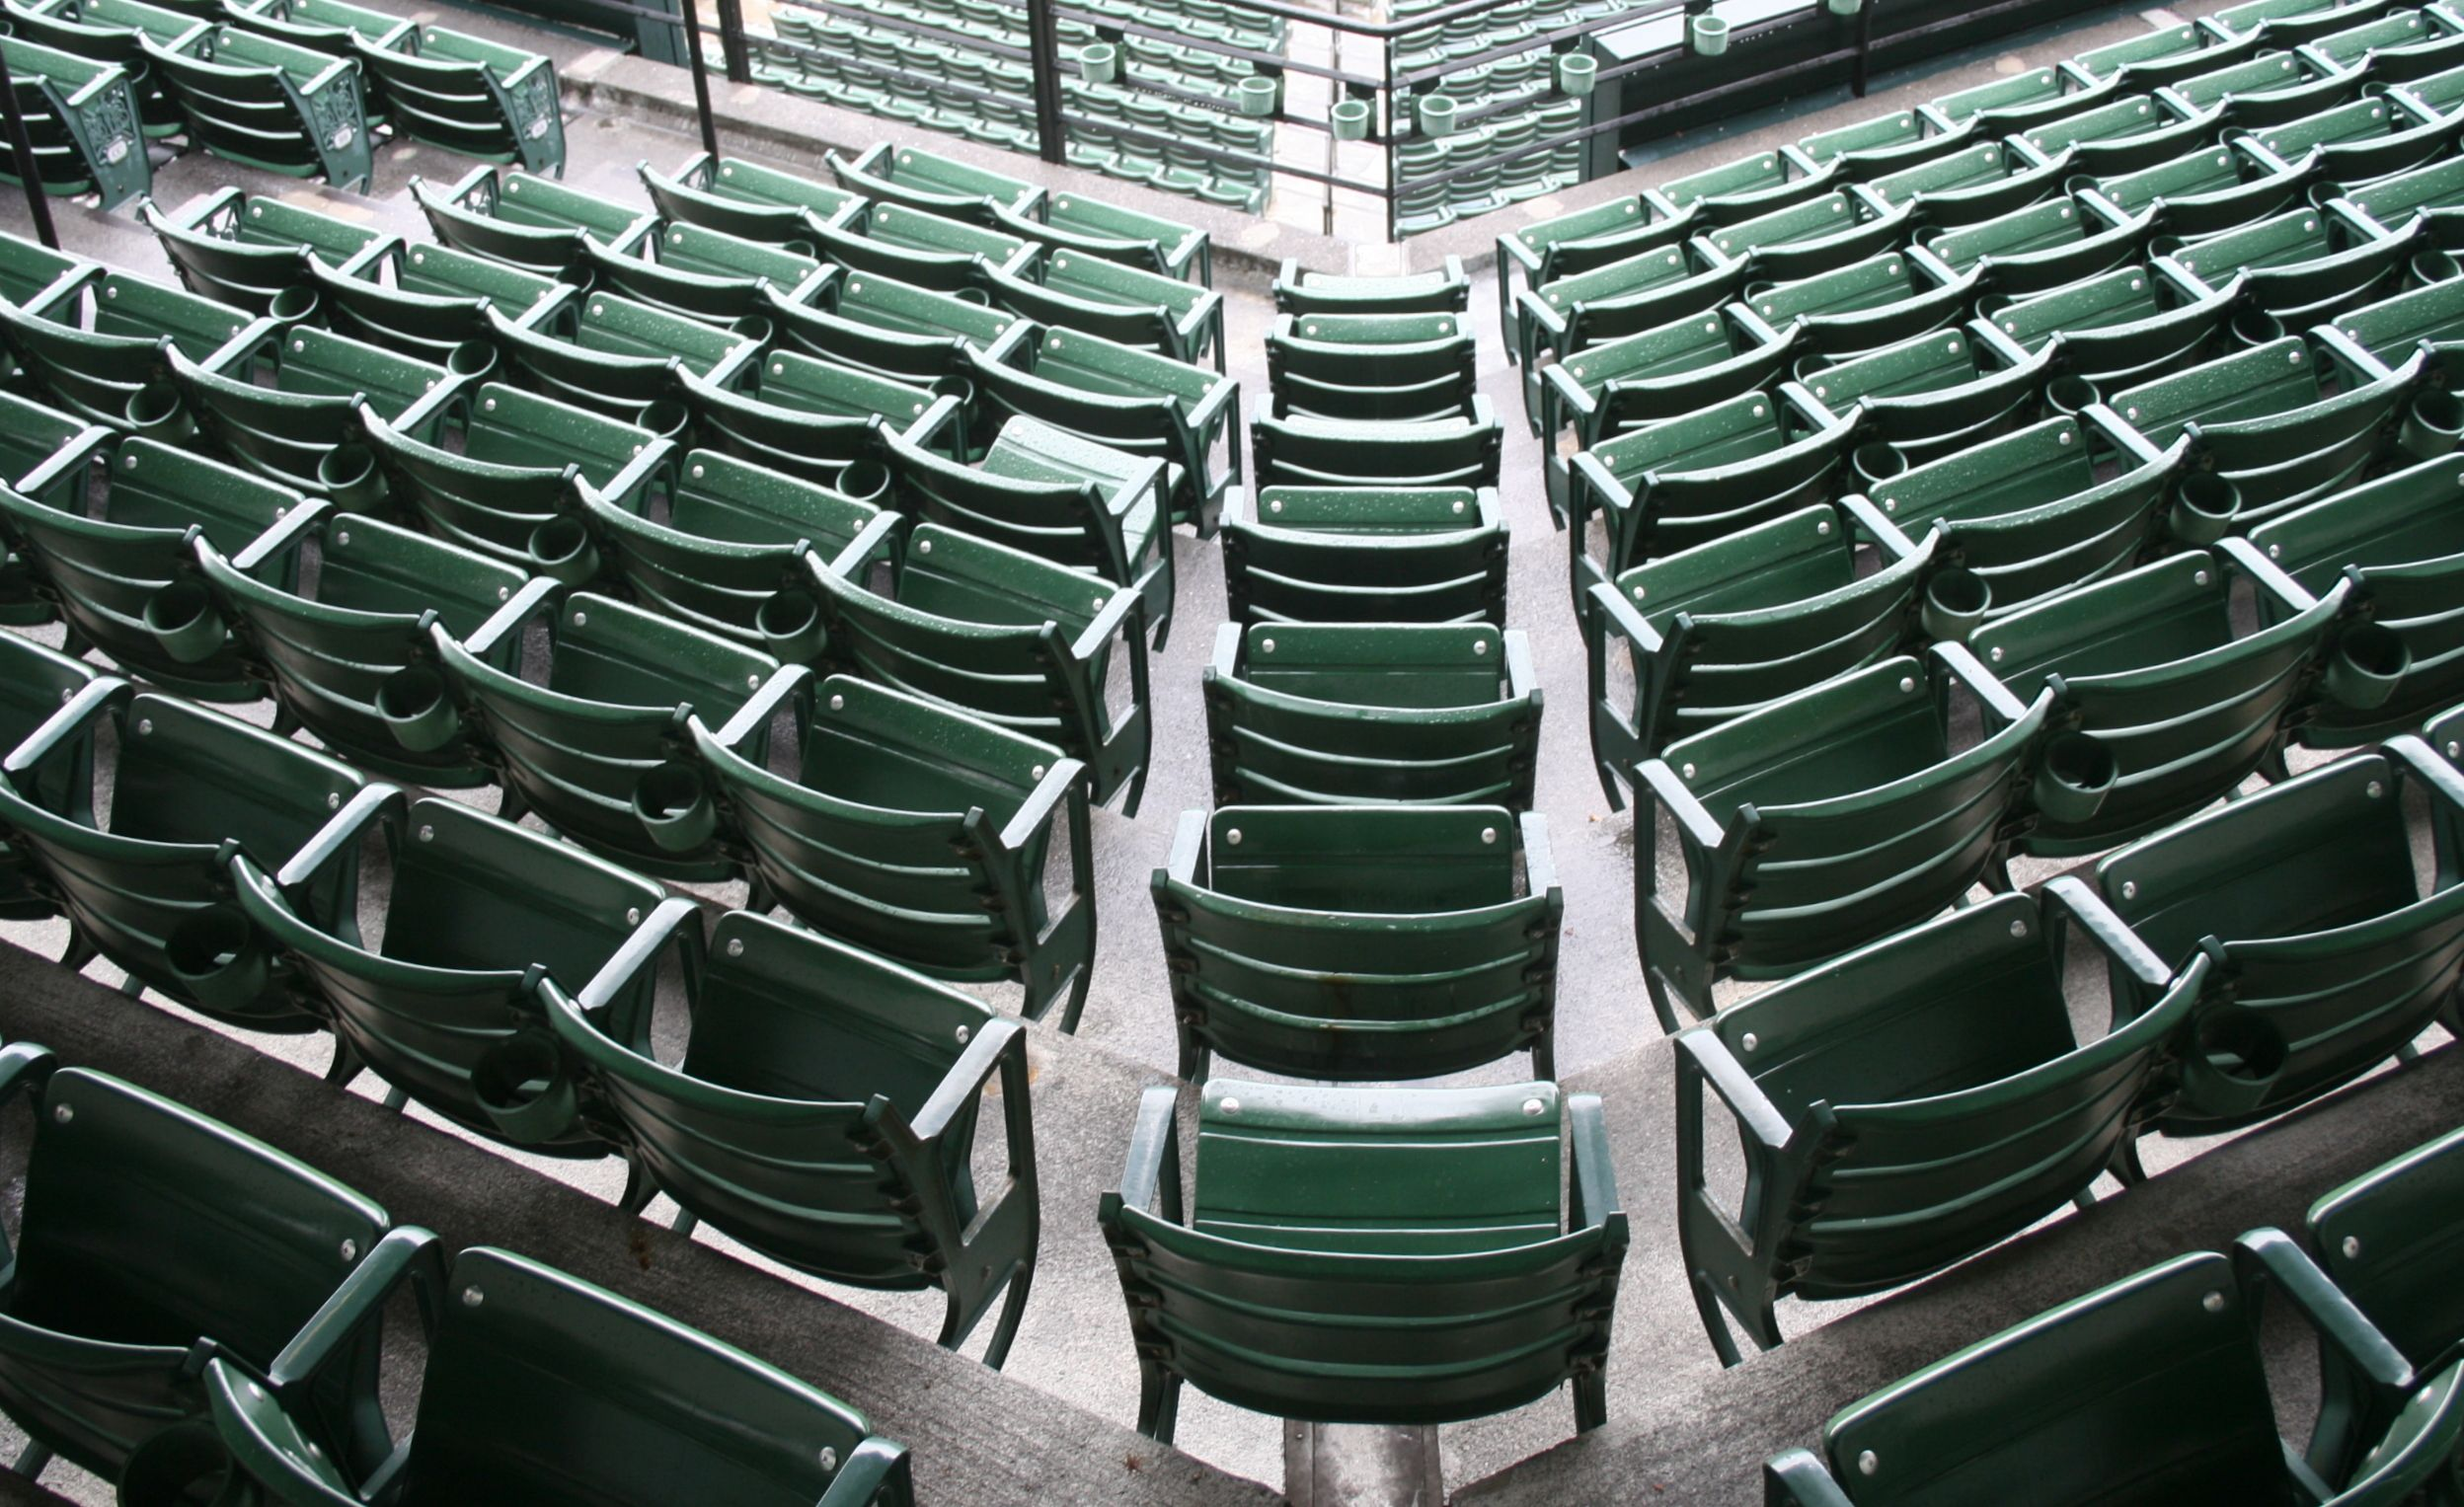 Mezzanine Level Oriole Park At Camden Yards Baltimore Camden Yards Seating Yard